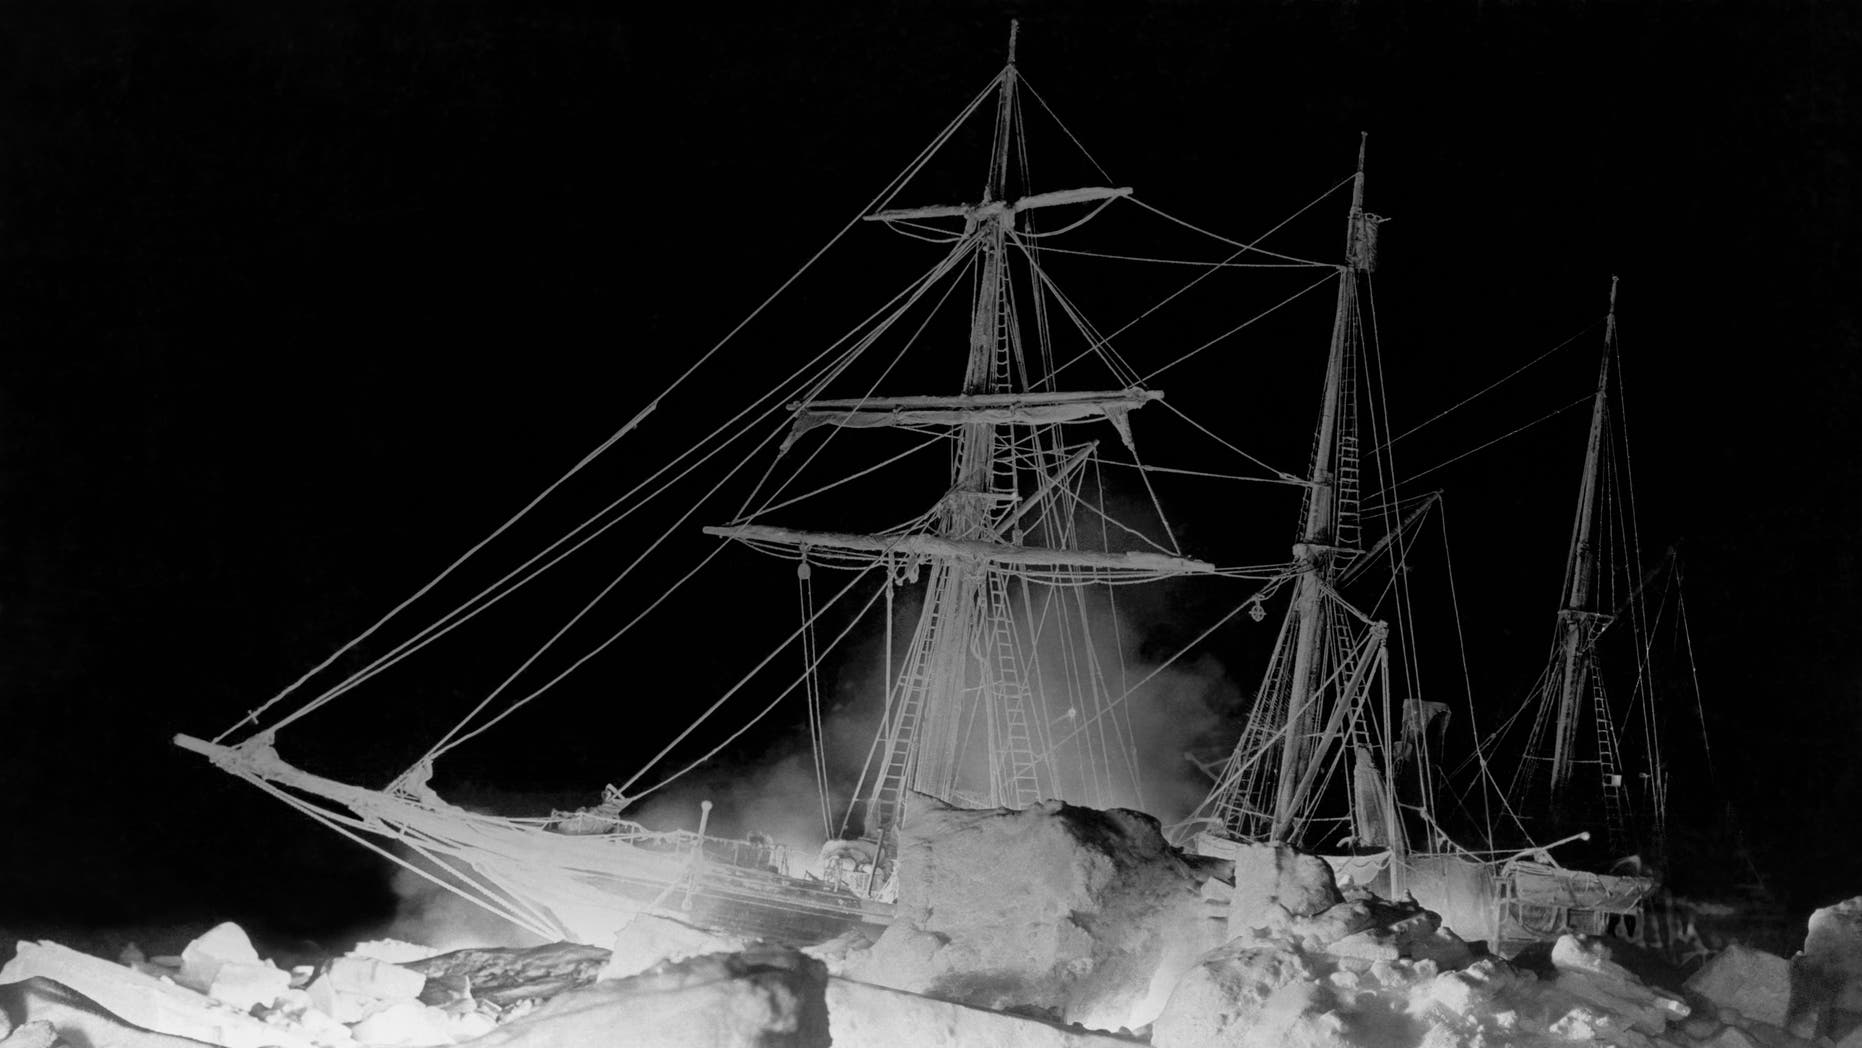 Shackleton's ship, the Endurance, locked in the Weddell Sea, where it finally sank, Antarctica, August 27, 1915. The remarkable lighting was furnished by an oil fire at the bow and a great deal of flash (gun) powder. (Photo by Underwood Archives/Getty Images)